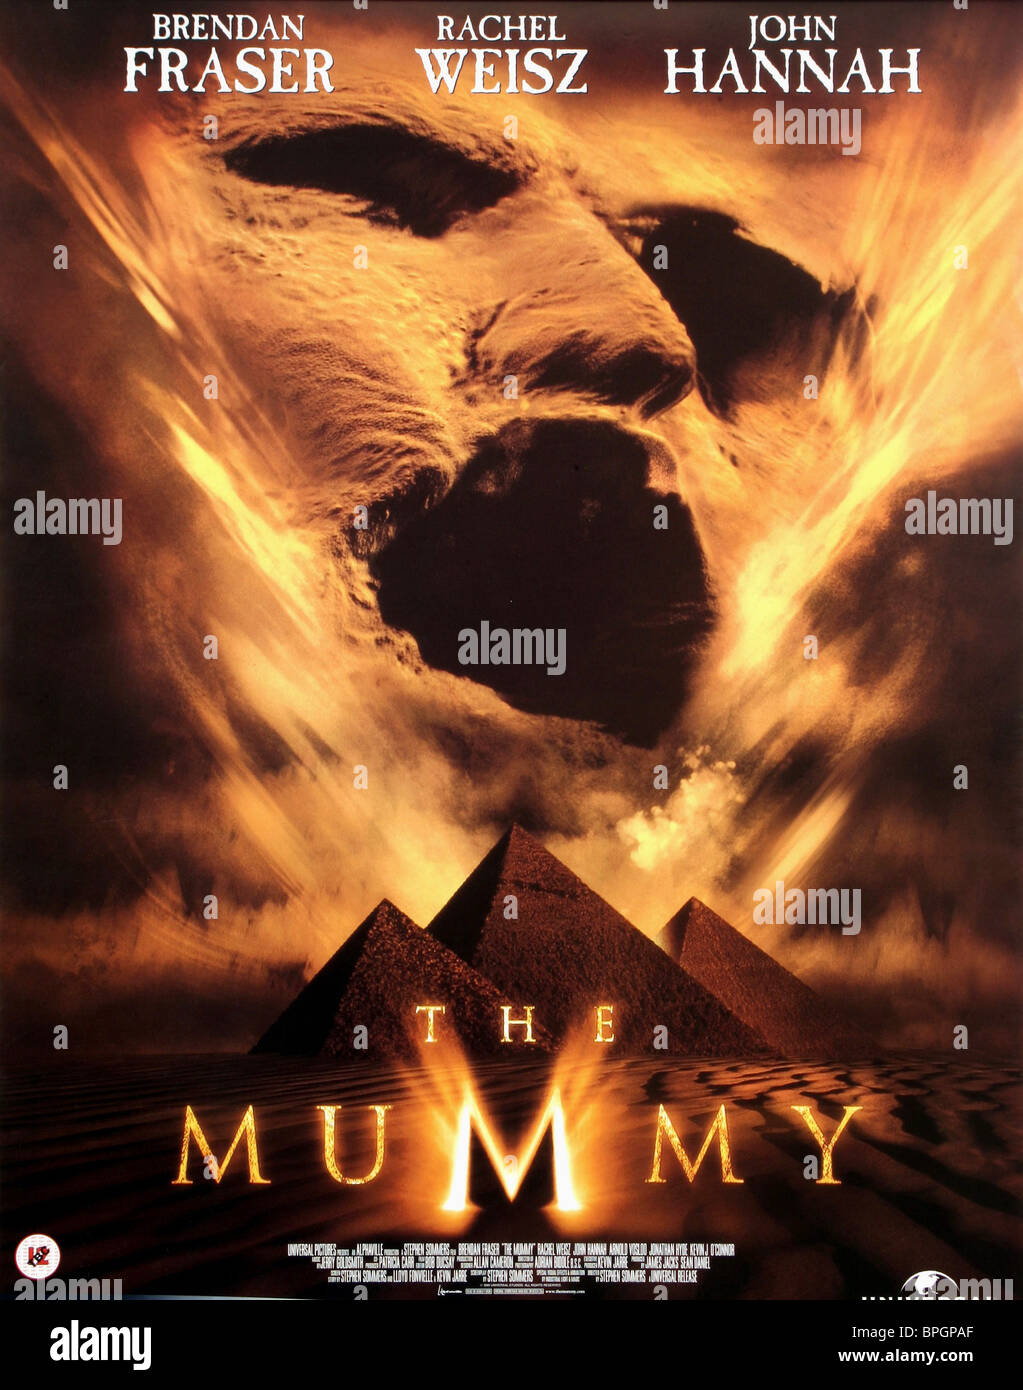 Film Poster The Mummy 1999 Stock Photo Alamy